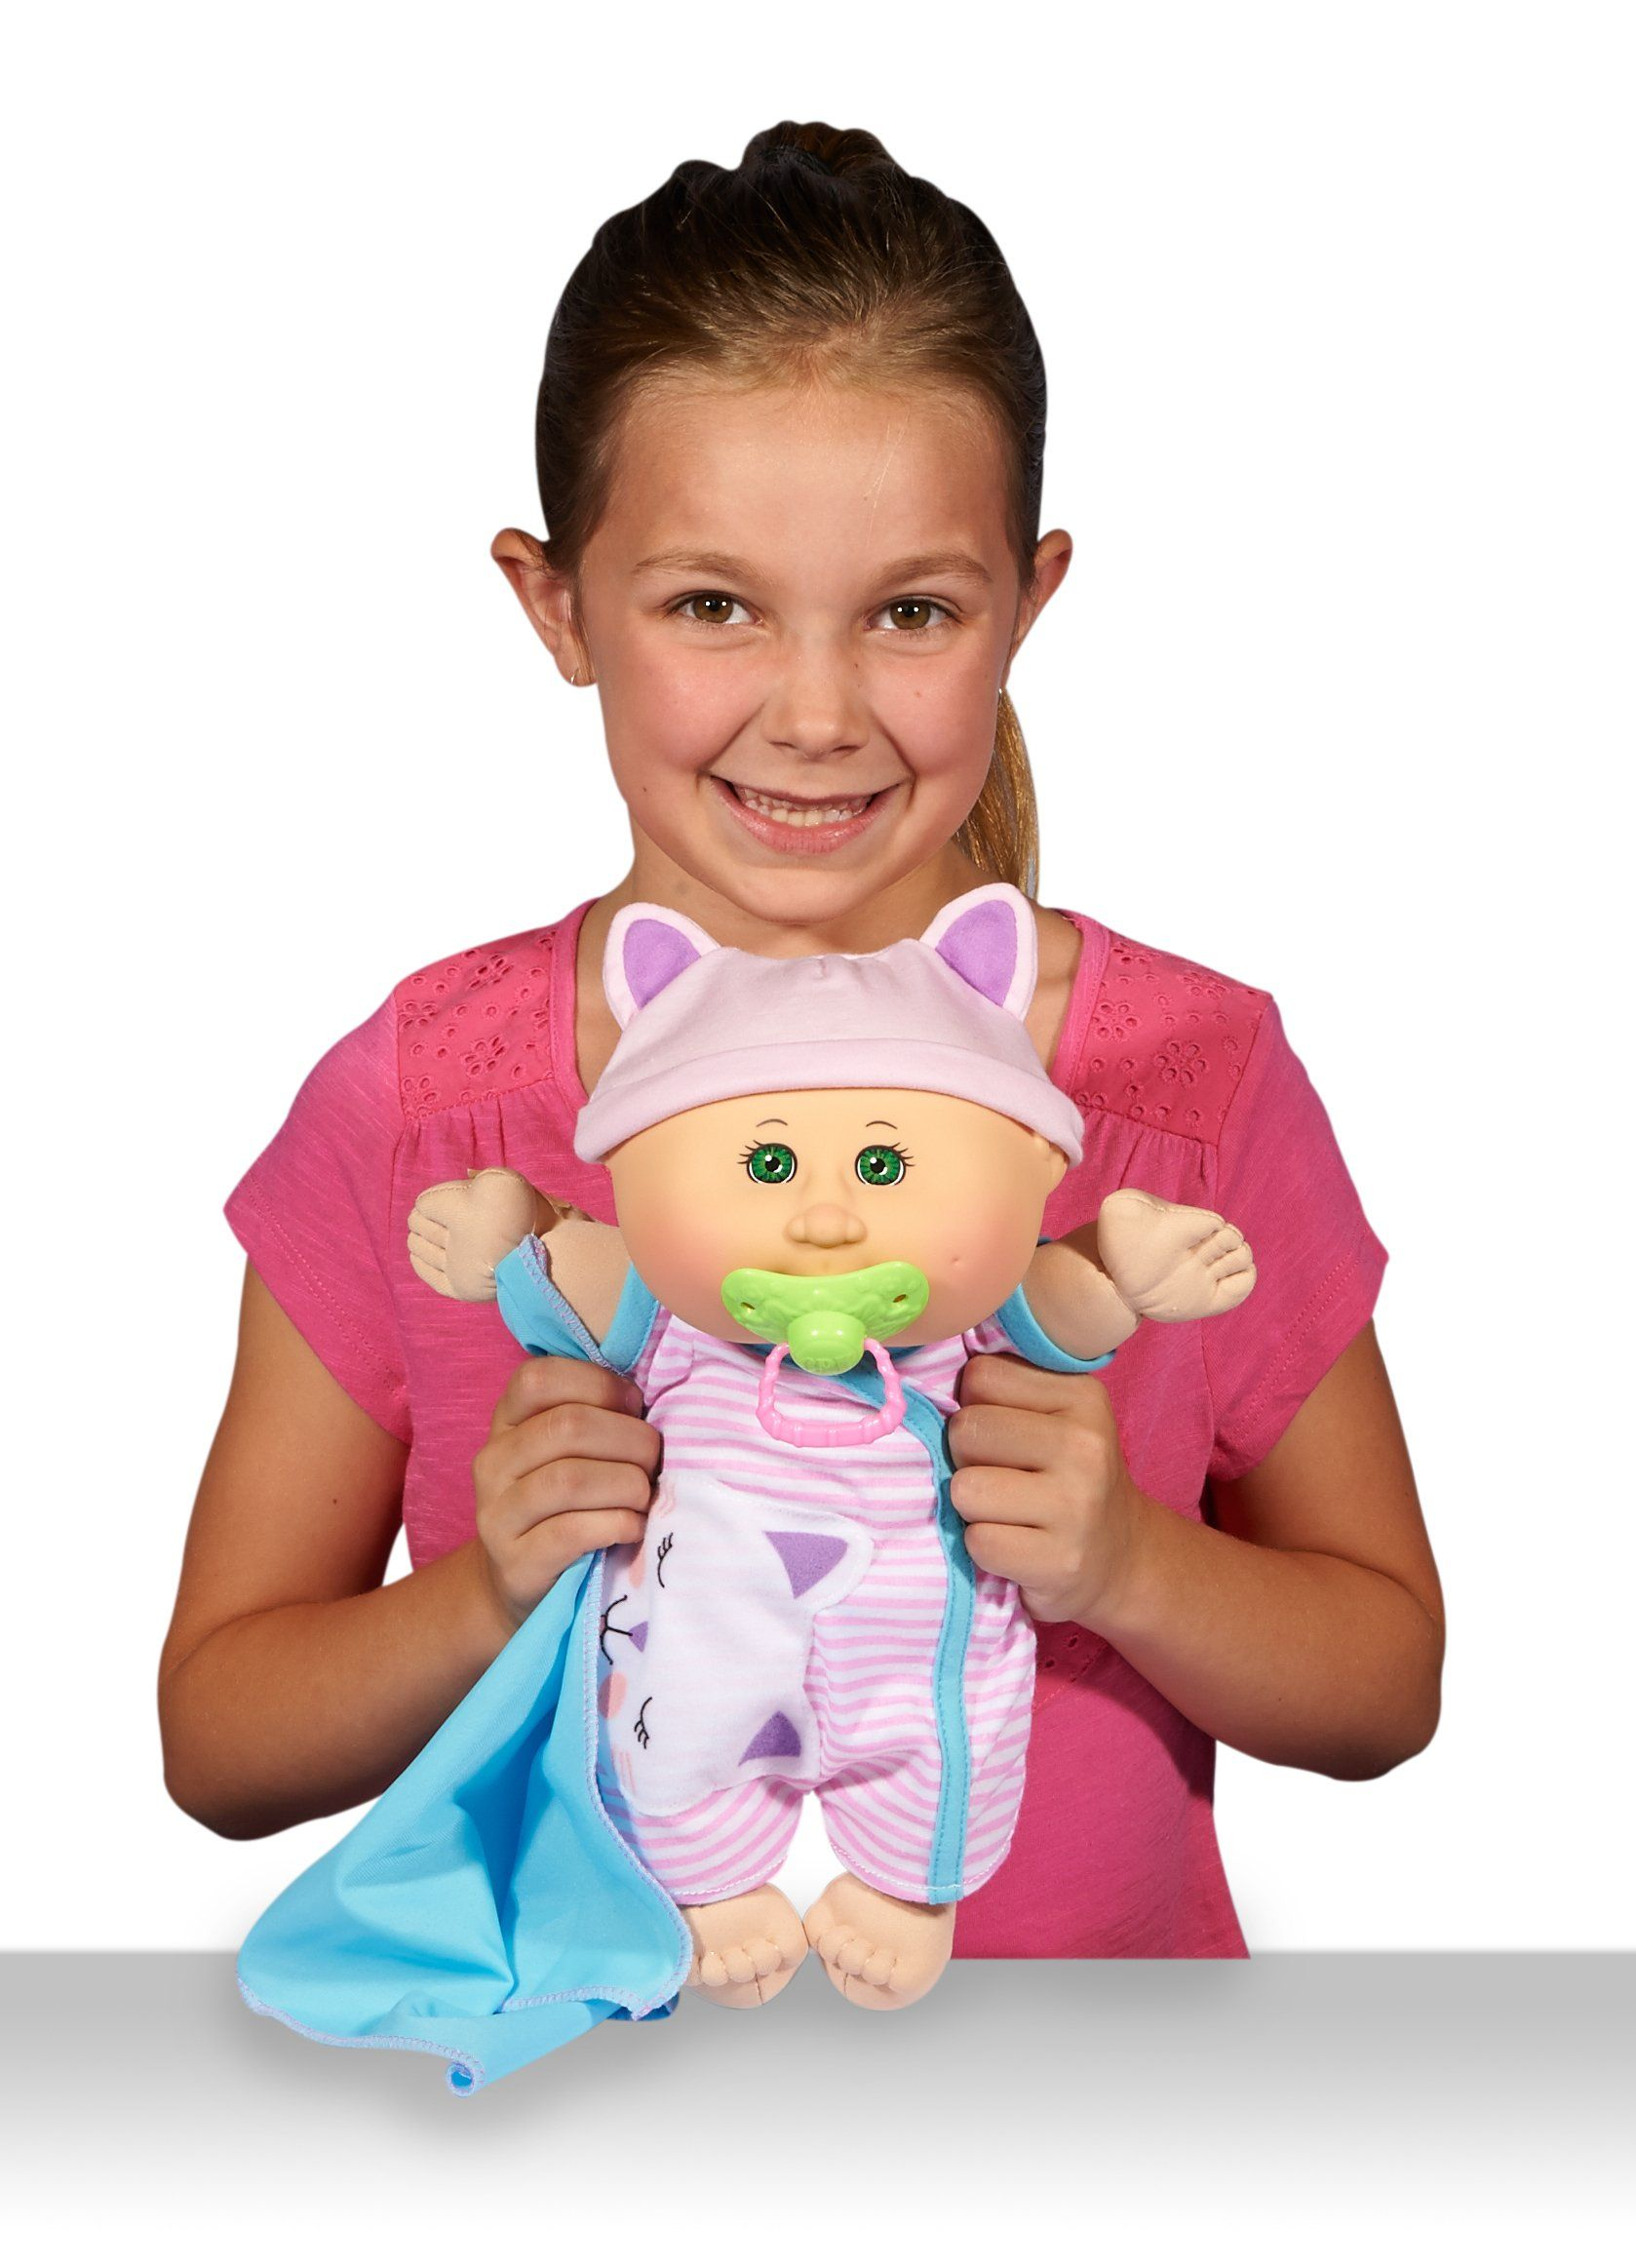 Cabbage Patch Kids 12 5 Naptime Babies Bald Blue Eye Girl Baby Doll Pink Stripe Jumper Fashion You Can Learn More Details At The Web Best Baby Doll Cabbage Patch Kids